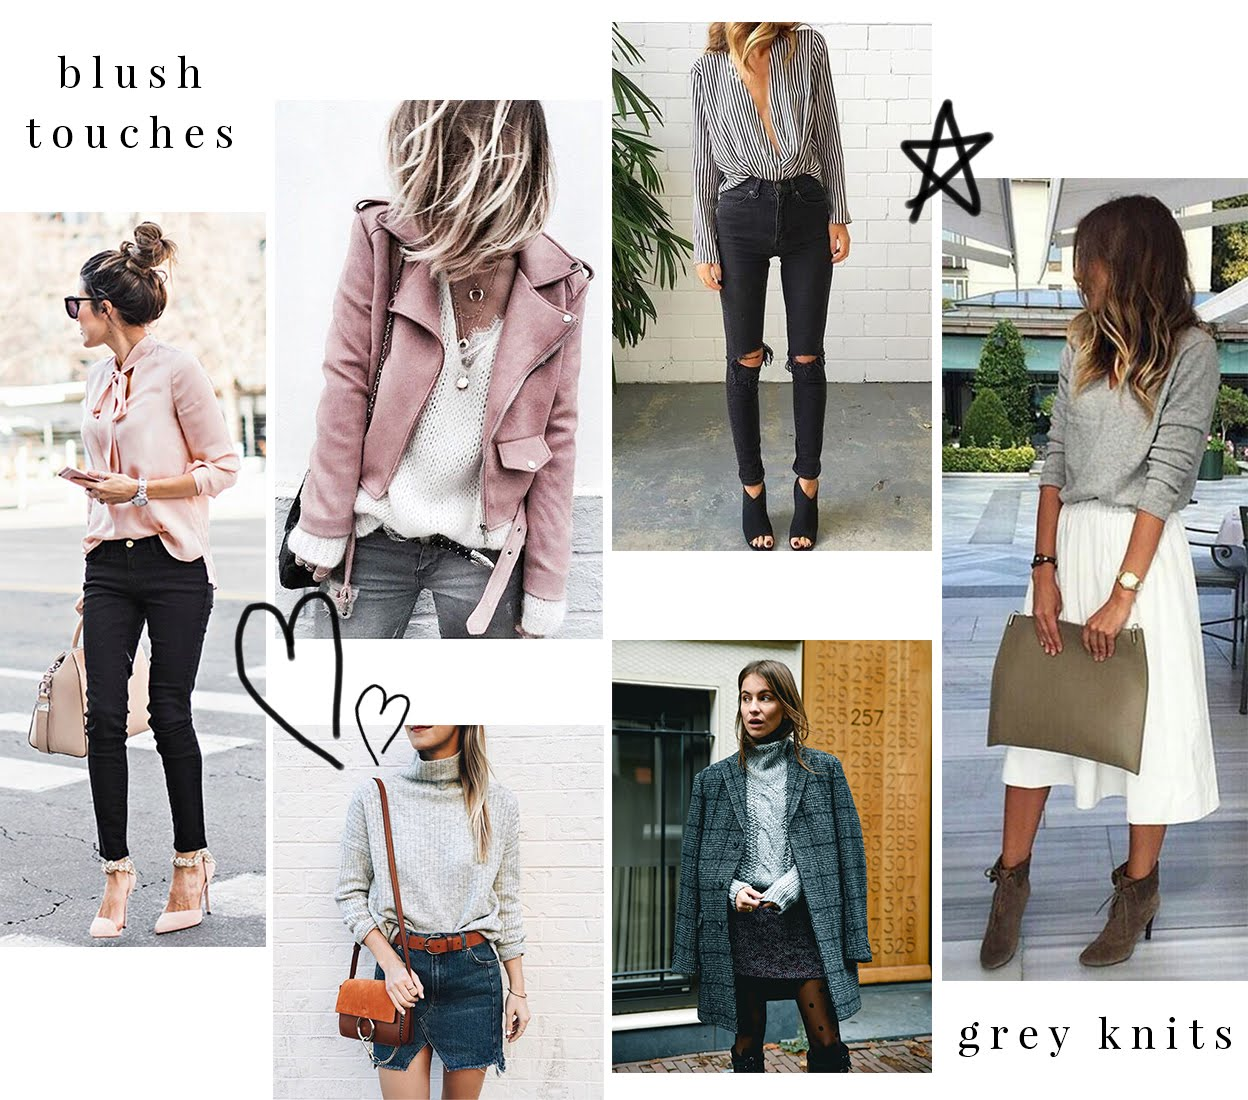 Style Crushes - Spring Outfit Inspiration - TESSA HOLLY